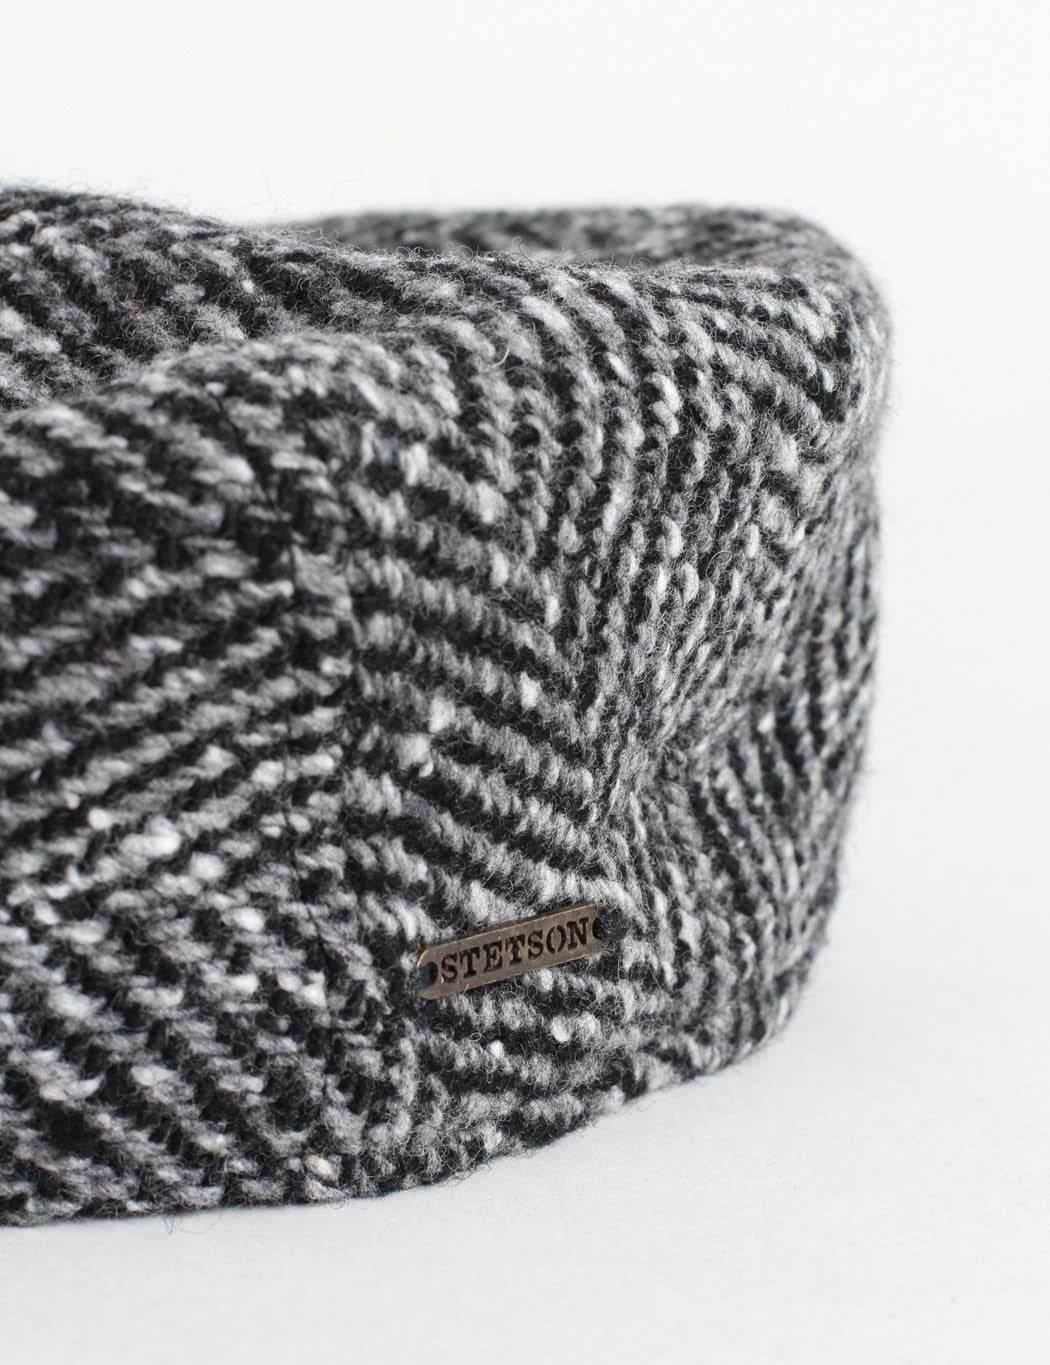 Stetson Madison Flat Cap - Black/Grey Herringbone